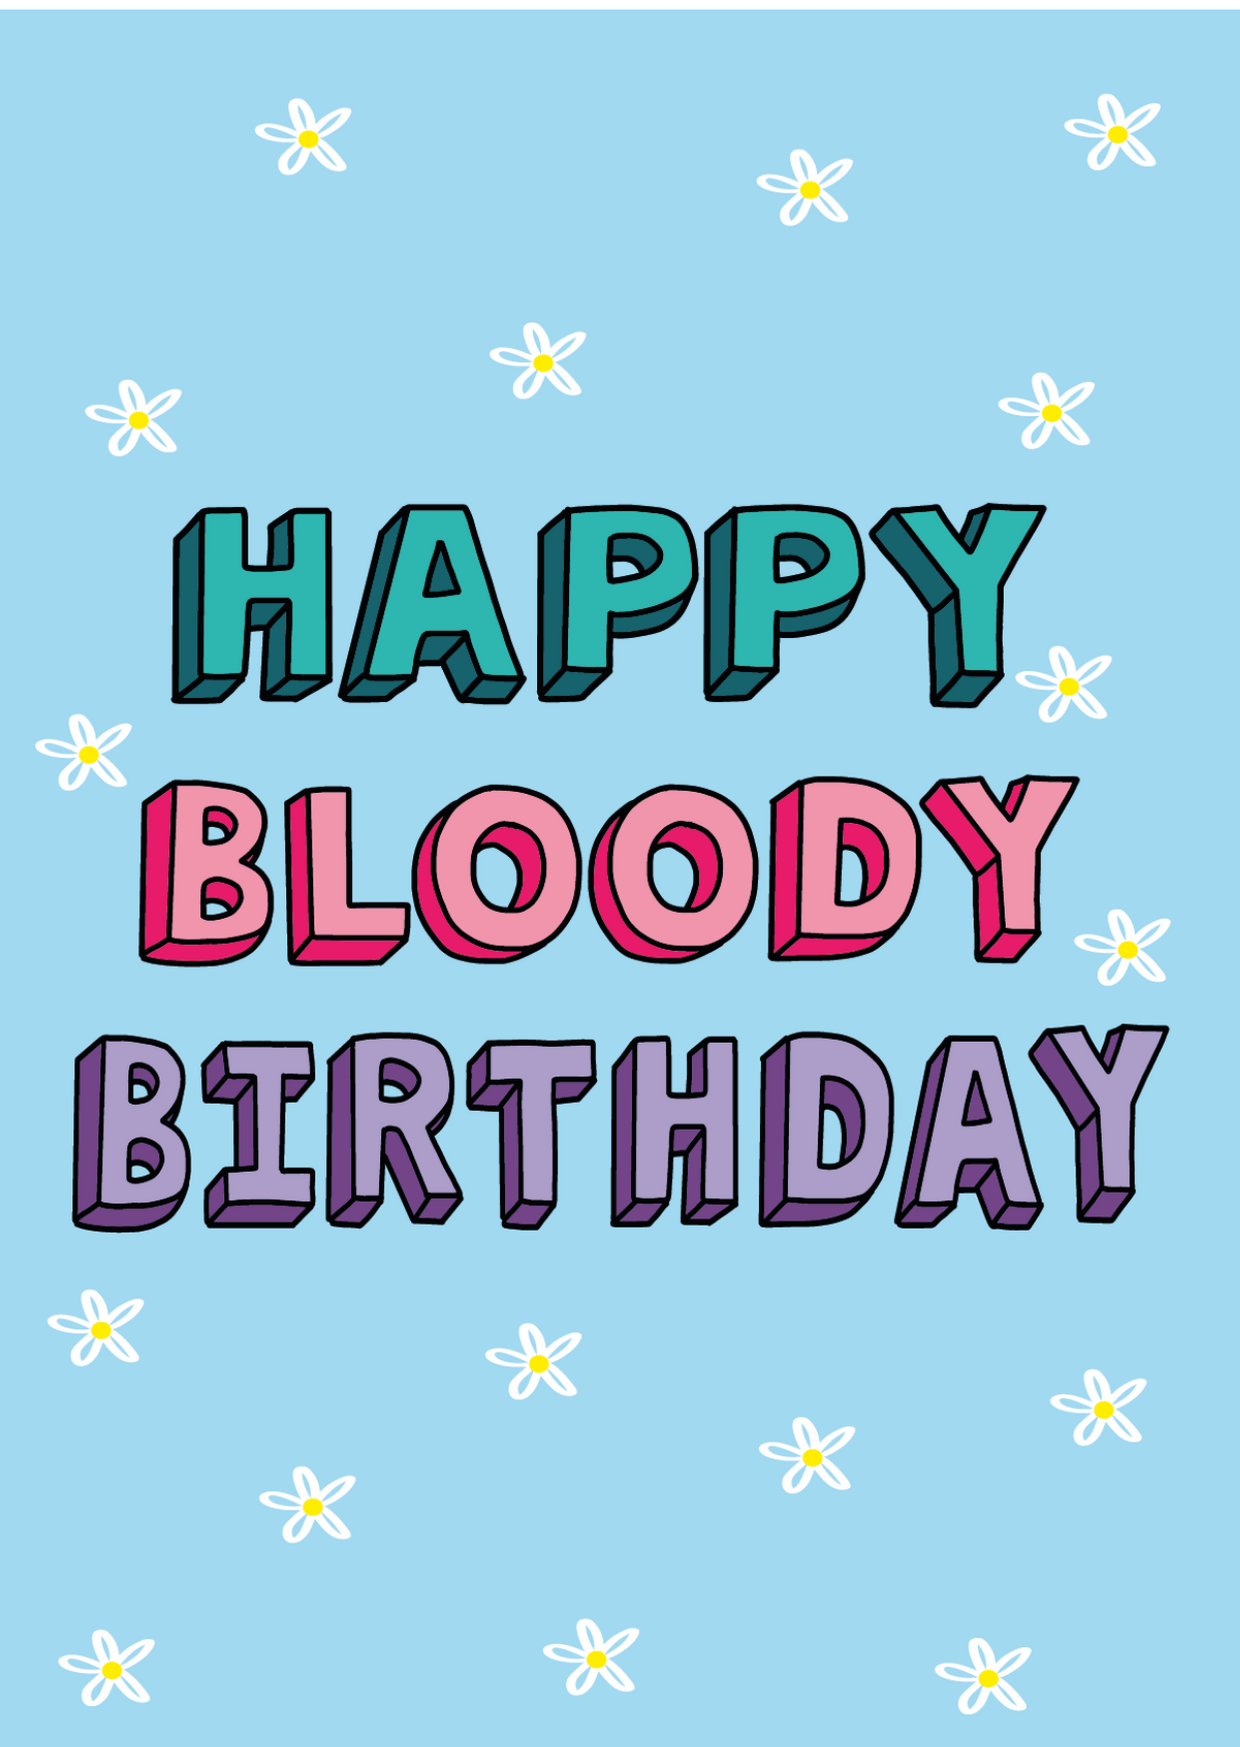 Happy Bloody Birthday - Ruby Kirk Designs